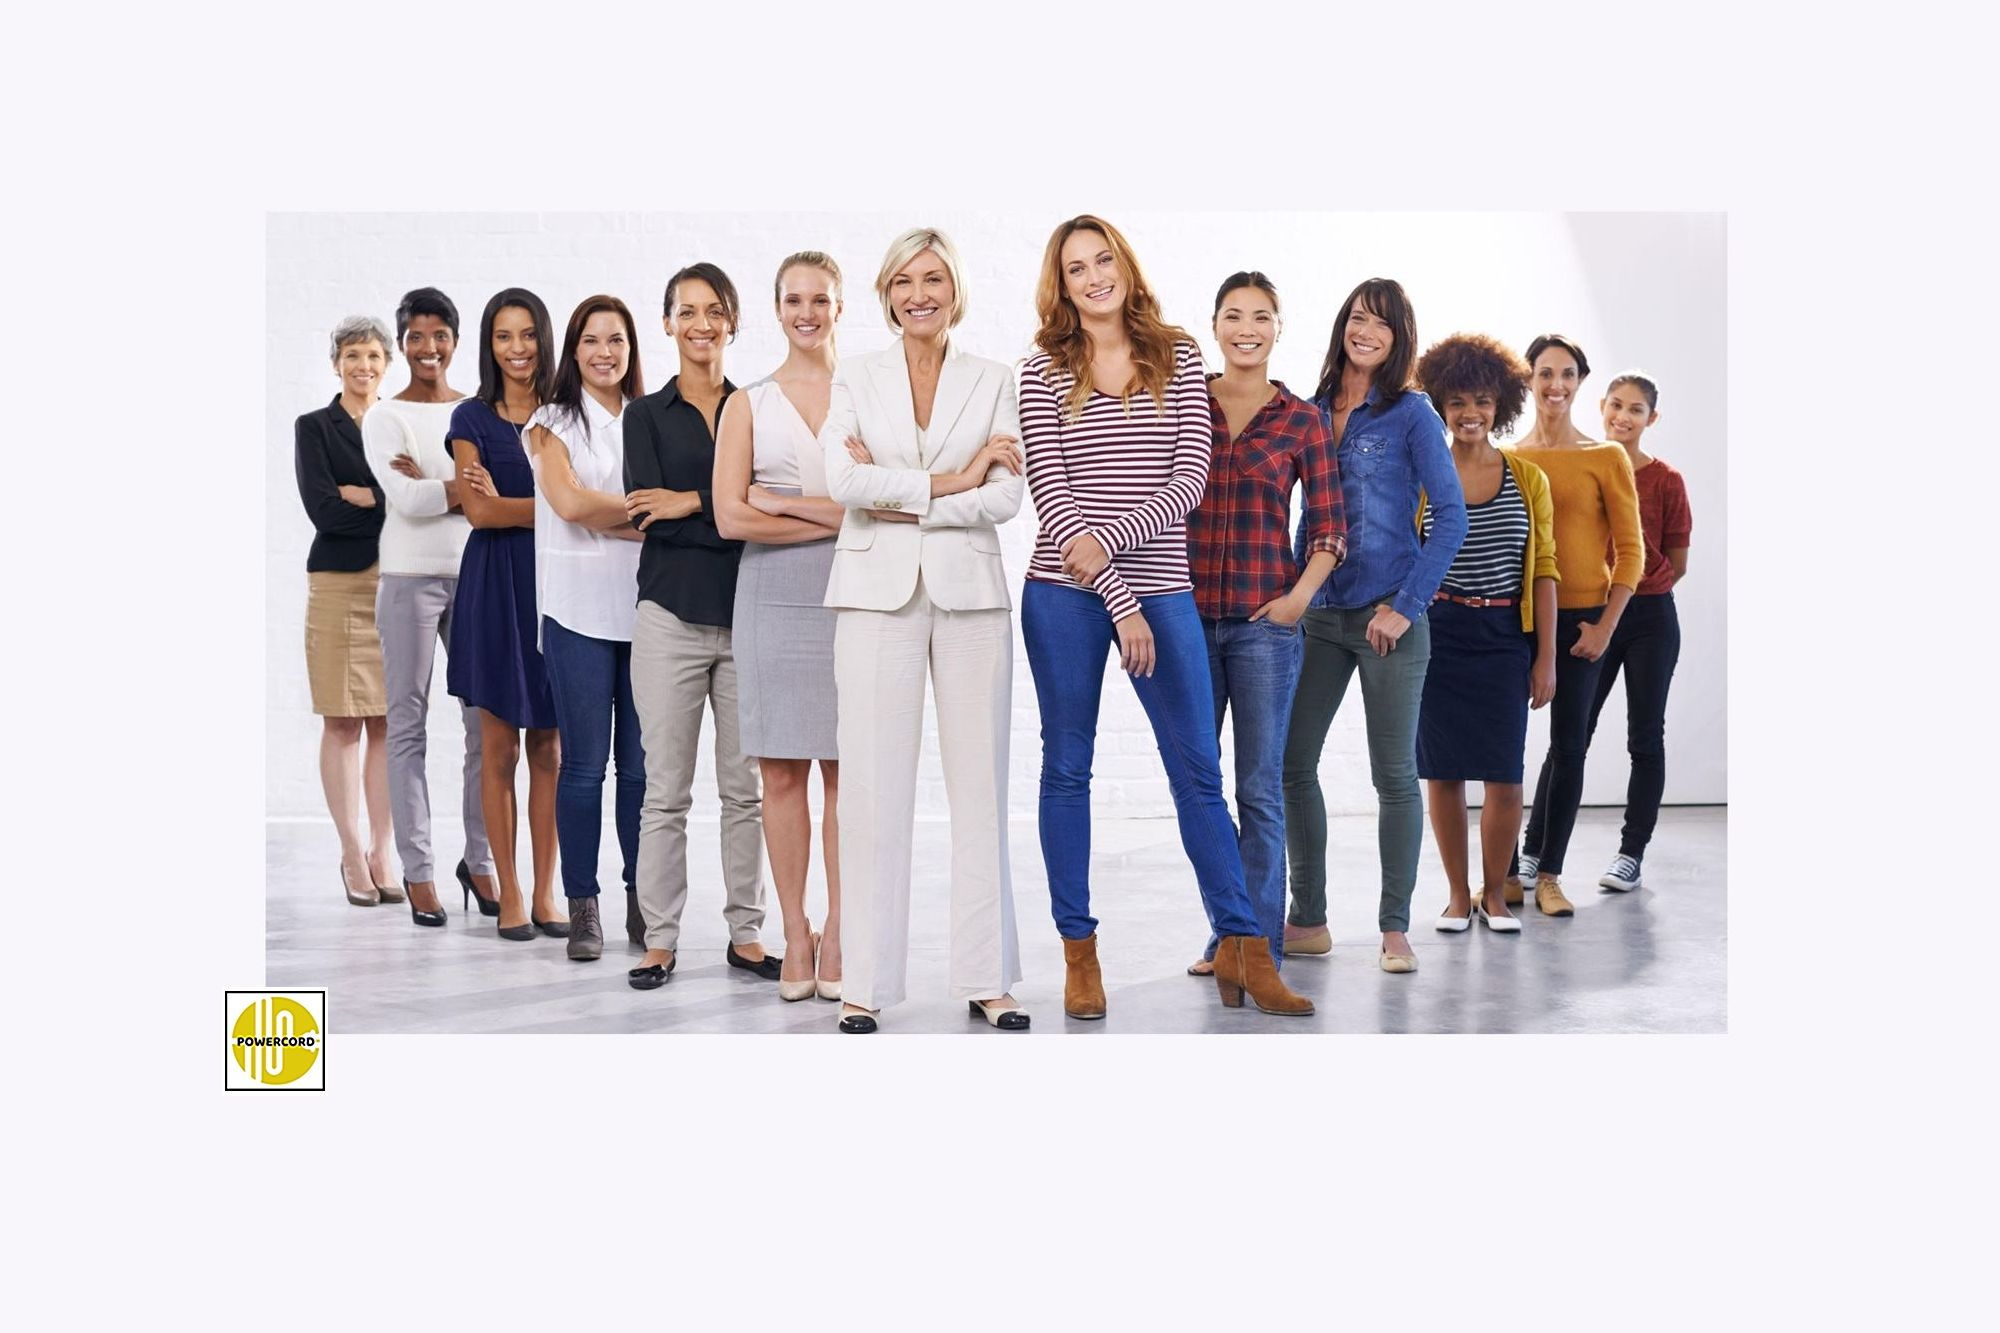 40 Online Resources All Women in Tech Careers Should Know About